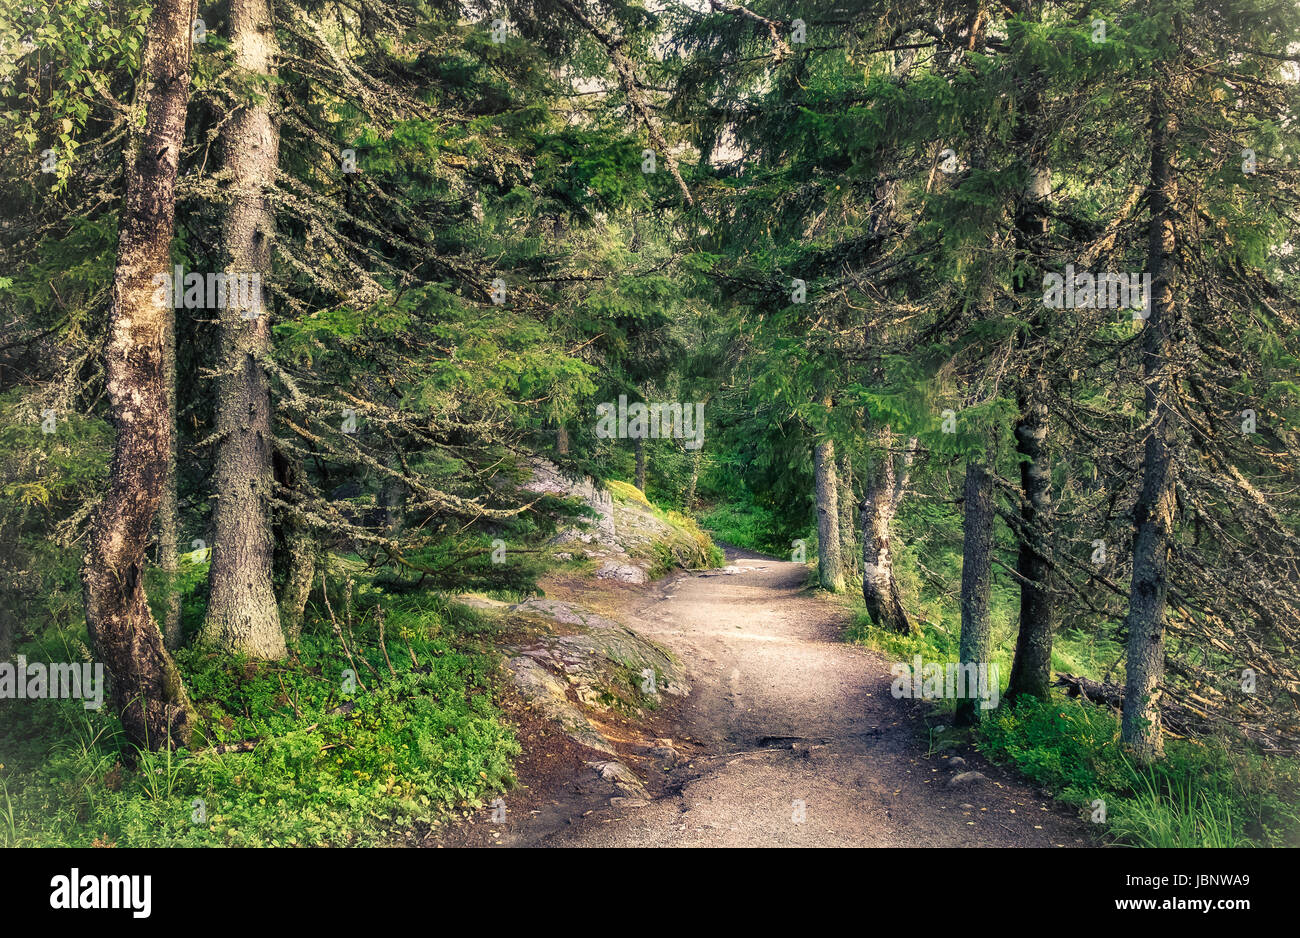 Primeval forest with path at summer day in Koli, national park, Finland - Stock Image